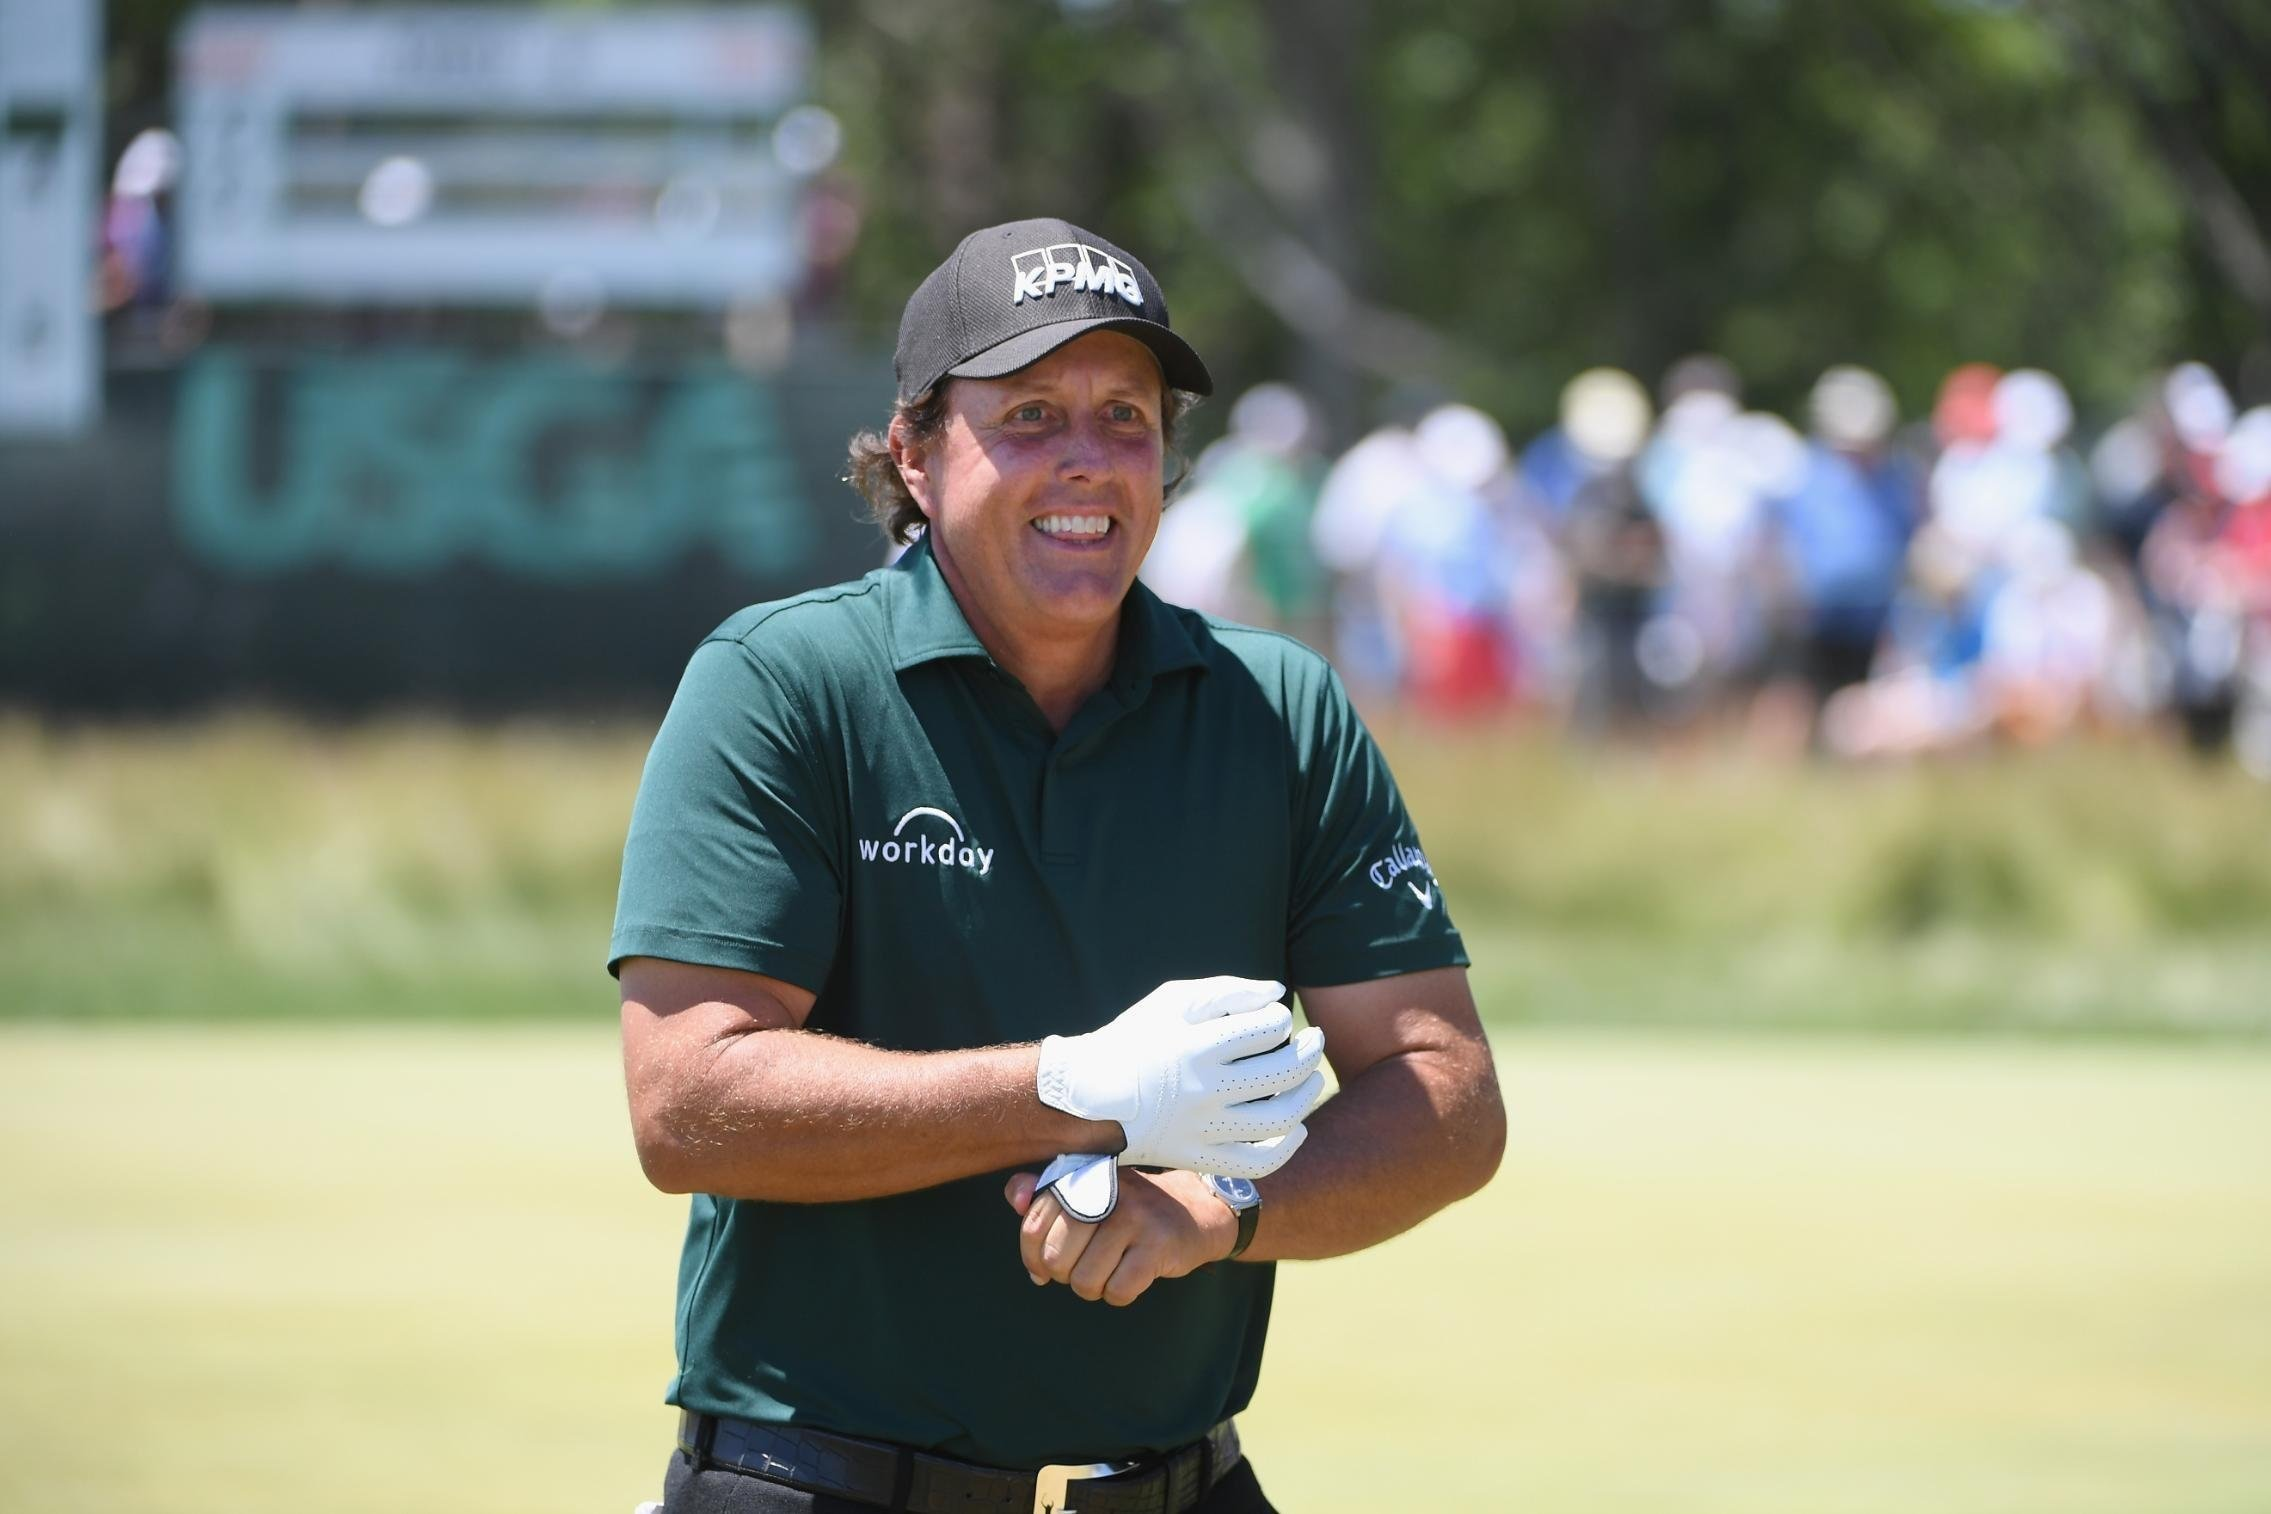 US Open: Phil Mickelson explains weird decision to hit a moving ball